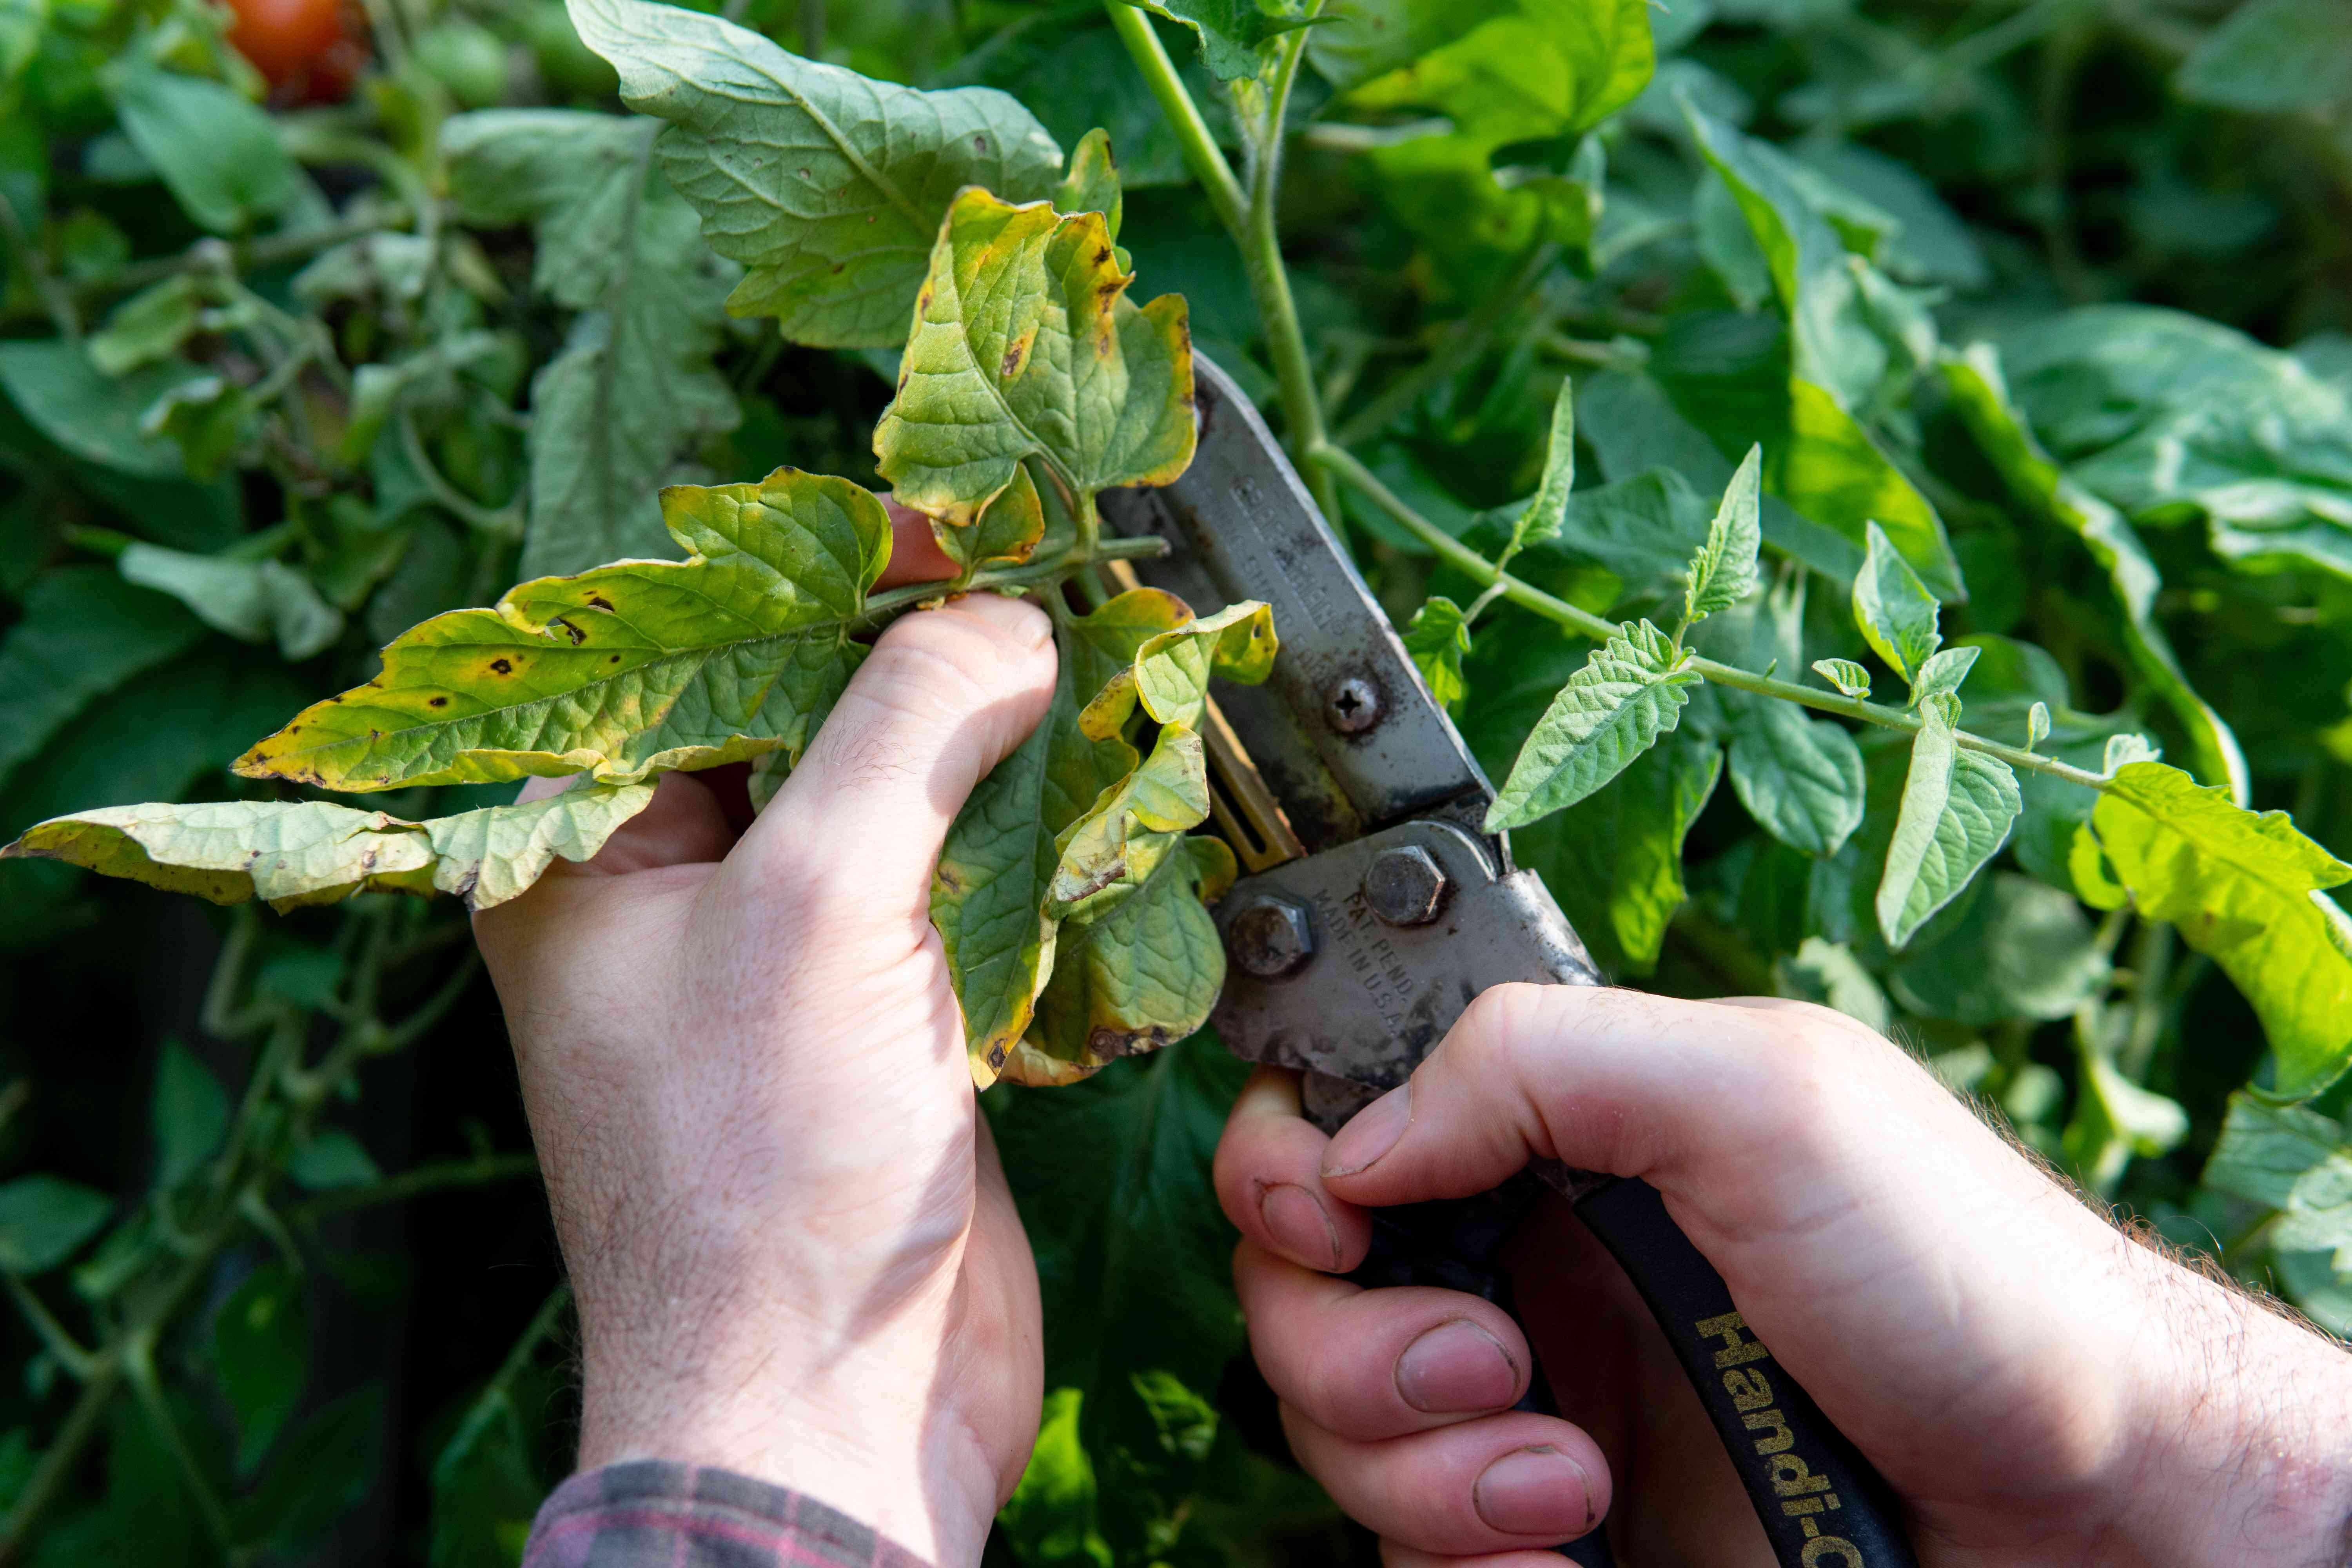 two hands cut plants with metal tool